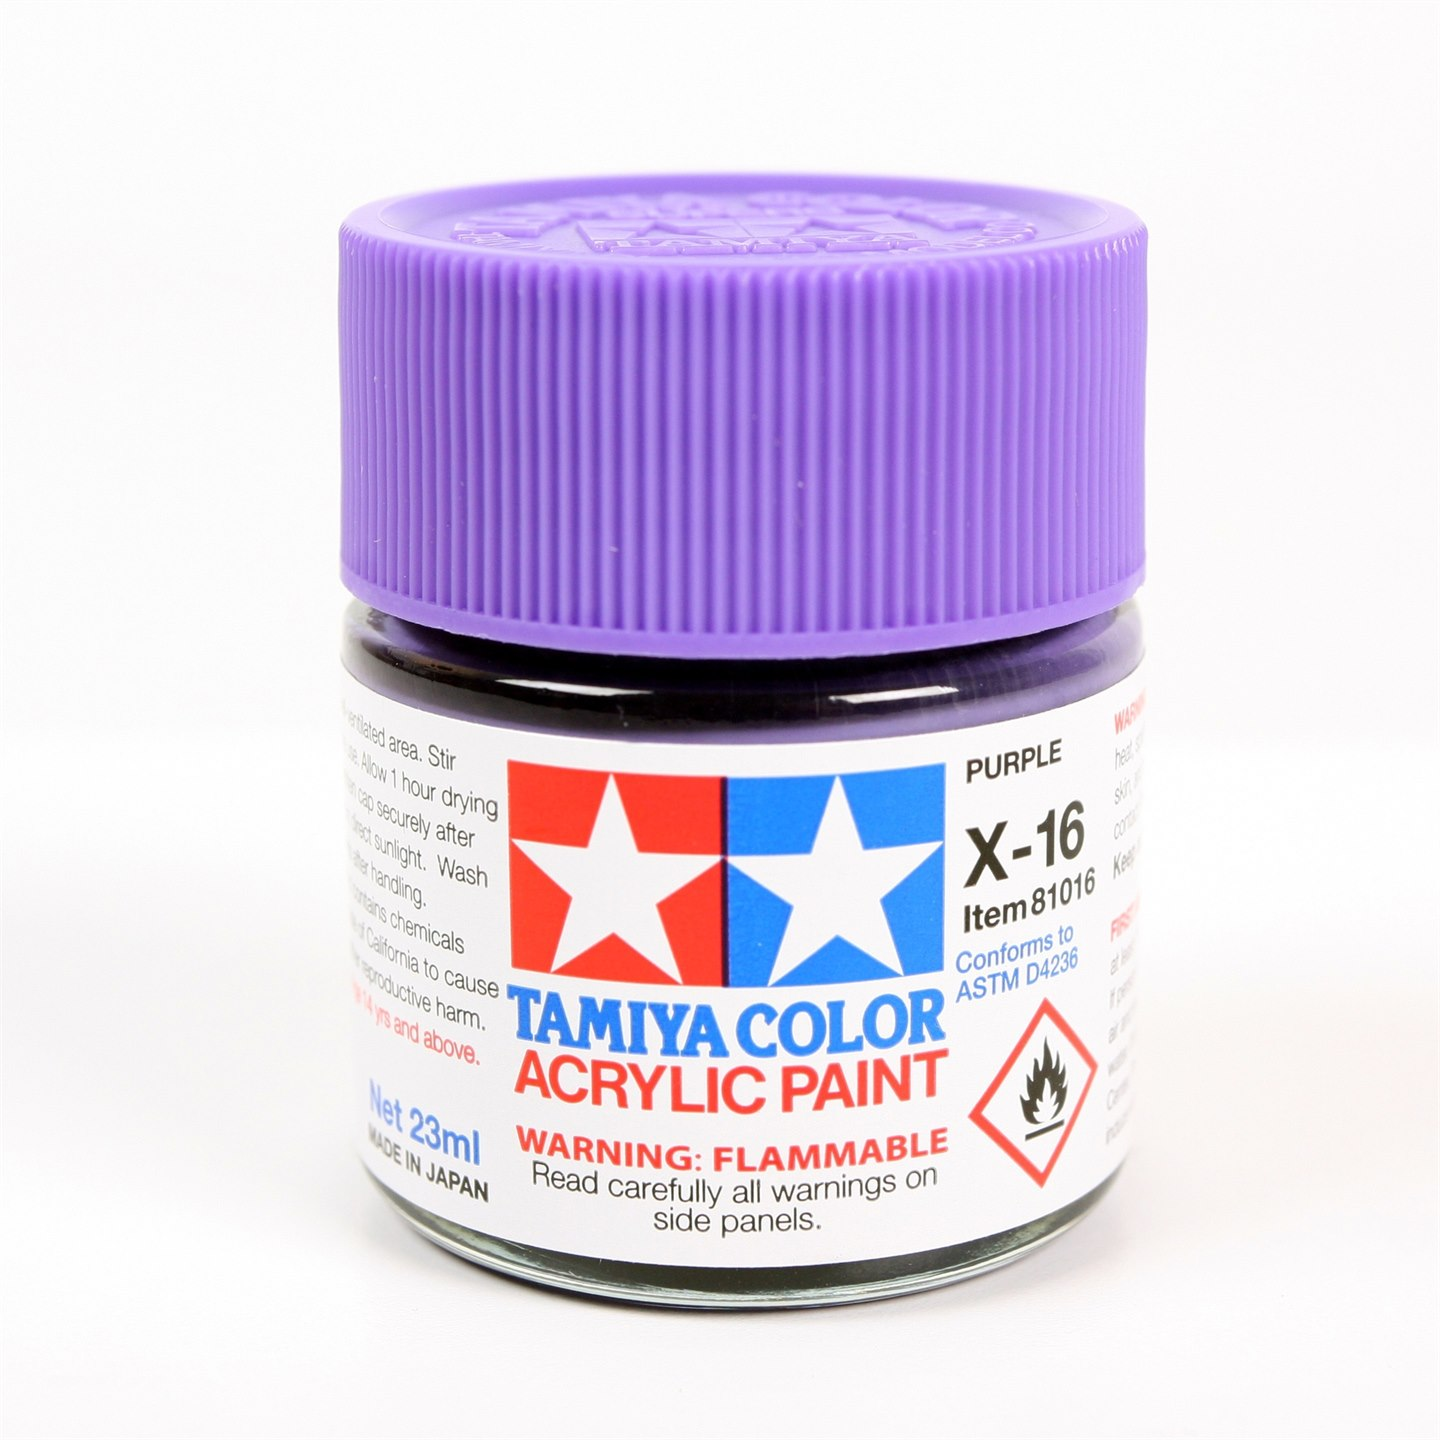 Tamiya Color Acrylic Paint X-16 (Purple) (23ml)